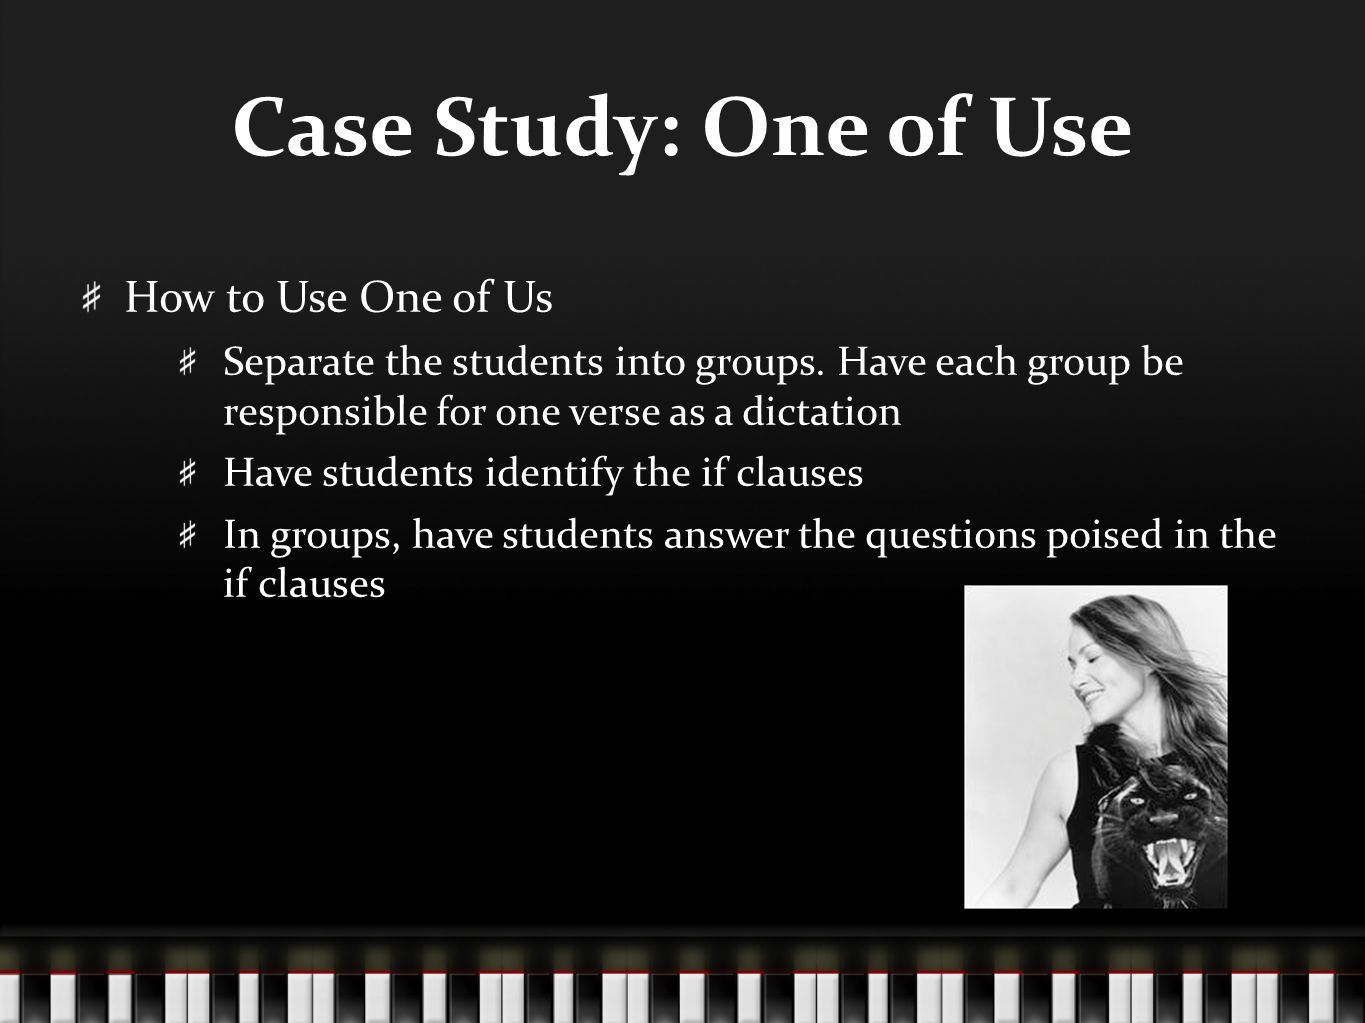 Case Study: One of Use How to Use One of Us Separate the students into groups. Have each group be responsible for one verse as a dictation Have studen